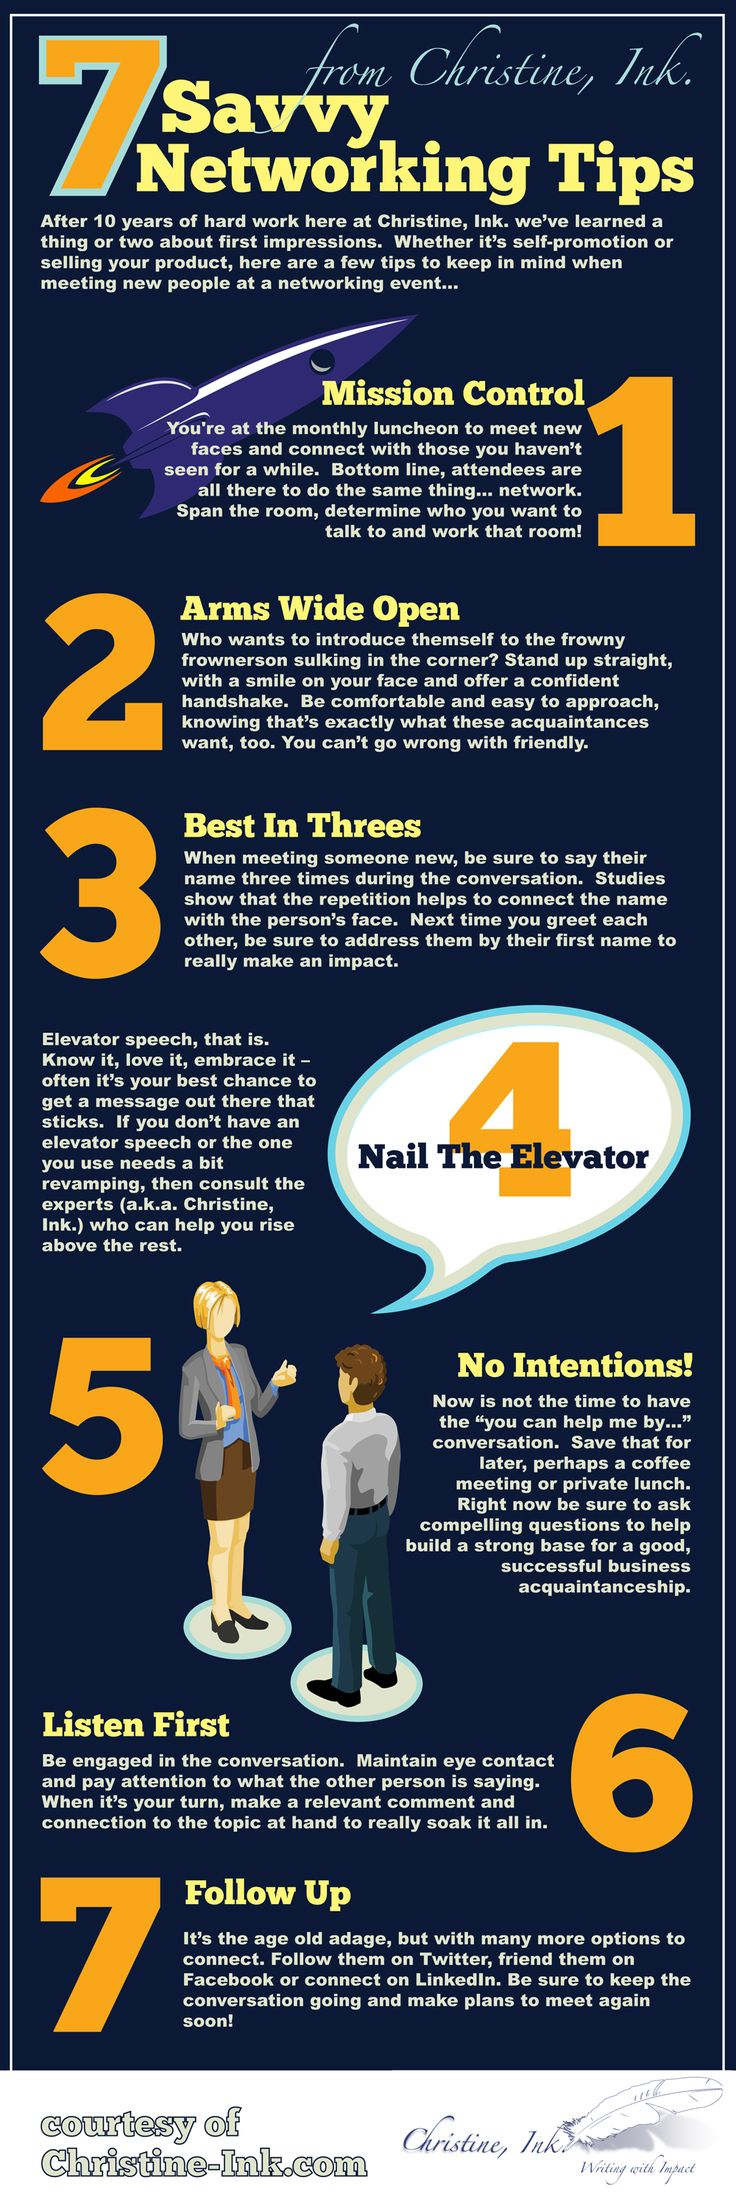 7 Savvy Networking Tips. Infographic: Business Networking Tipsu2026